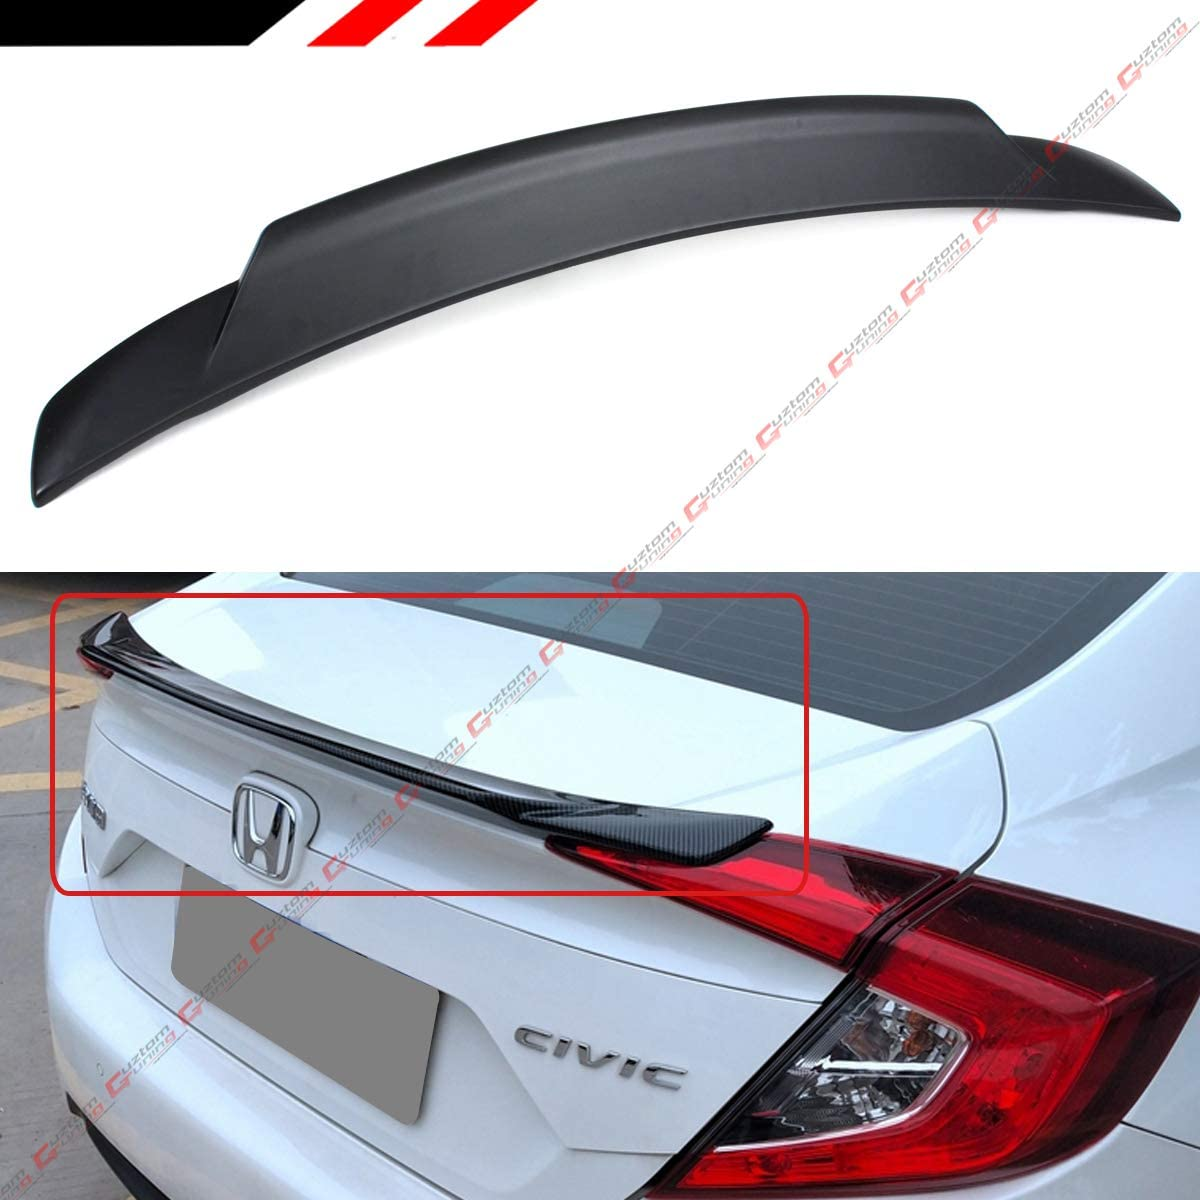 2016-2018 Honda Civic 2 Door Coupe Painted Factory Style Rear Spoiler Wing NEW